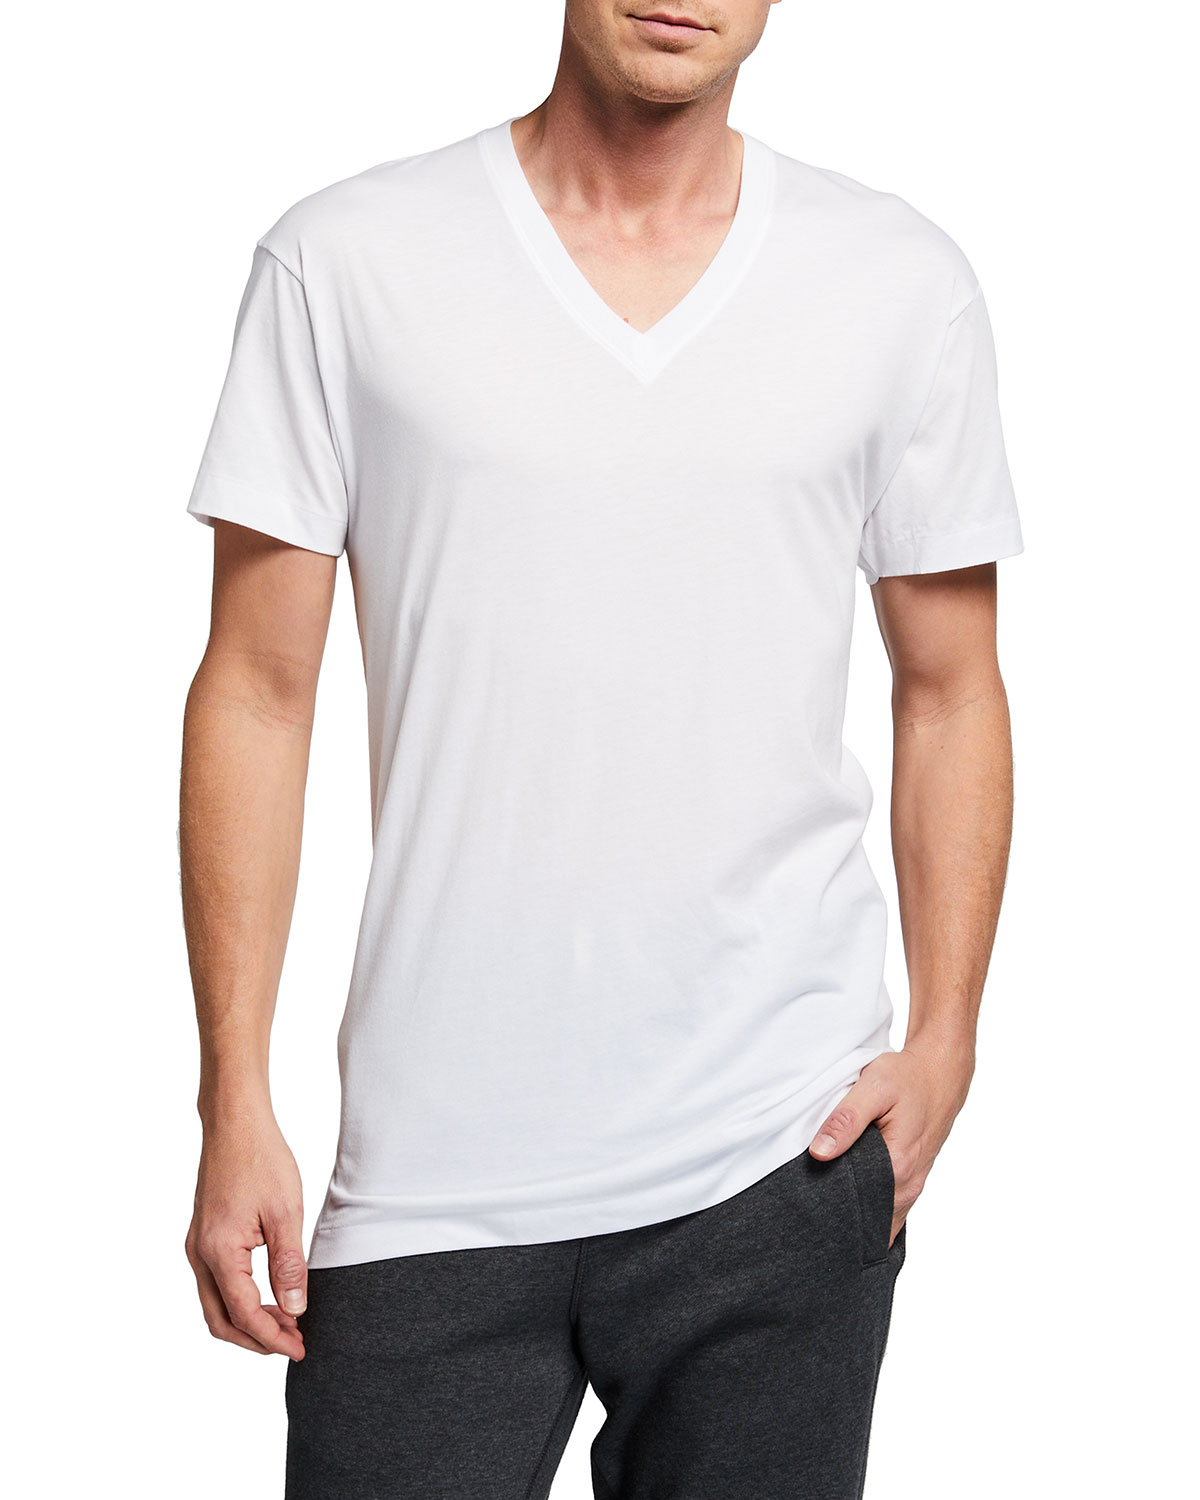 White T Shirt   Neiman Marcus 7b984794a3be